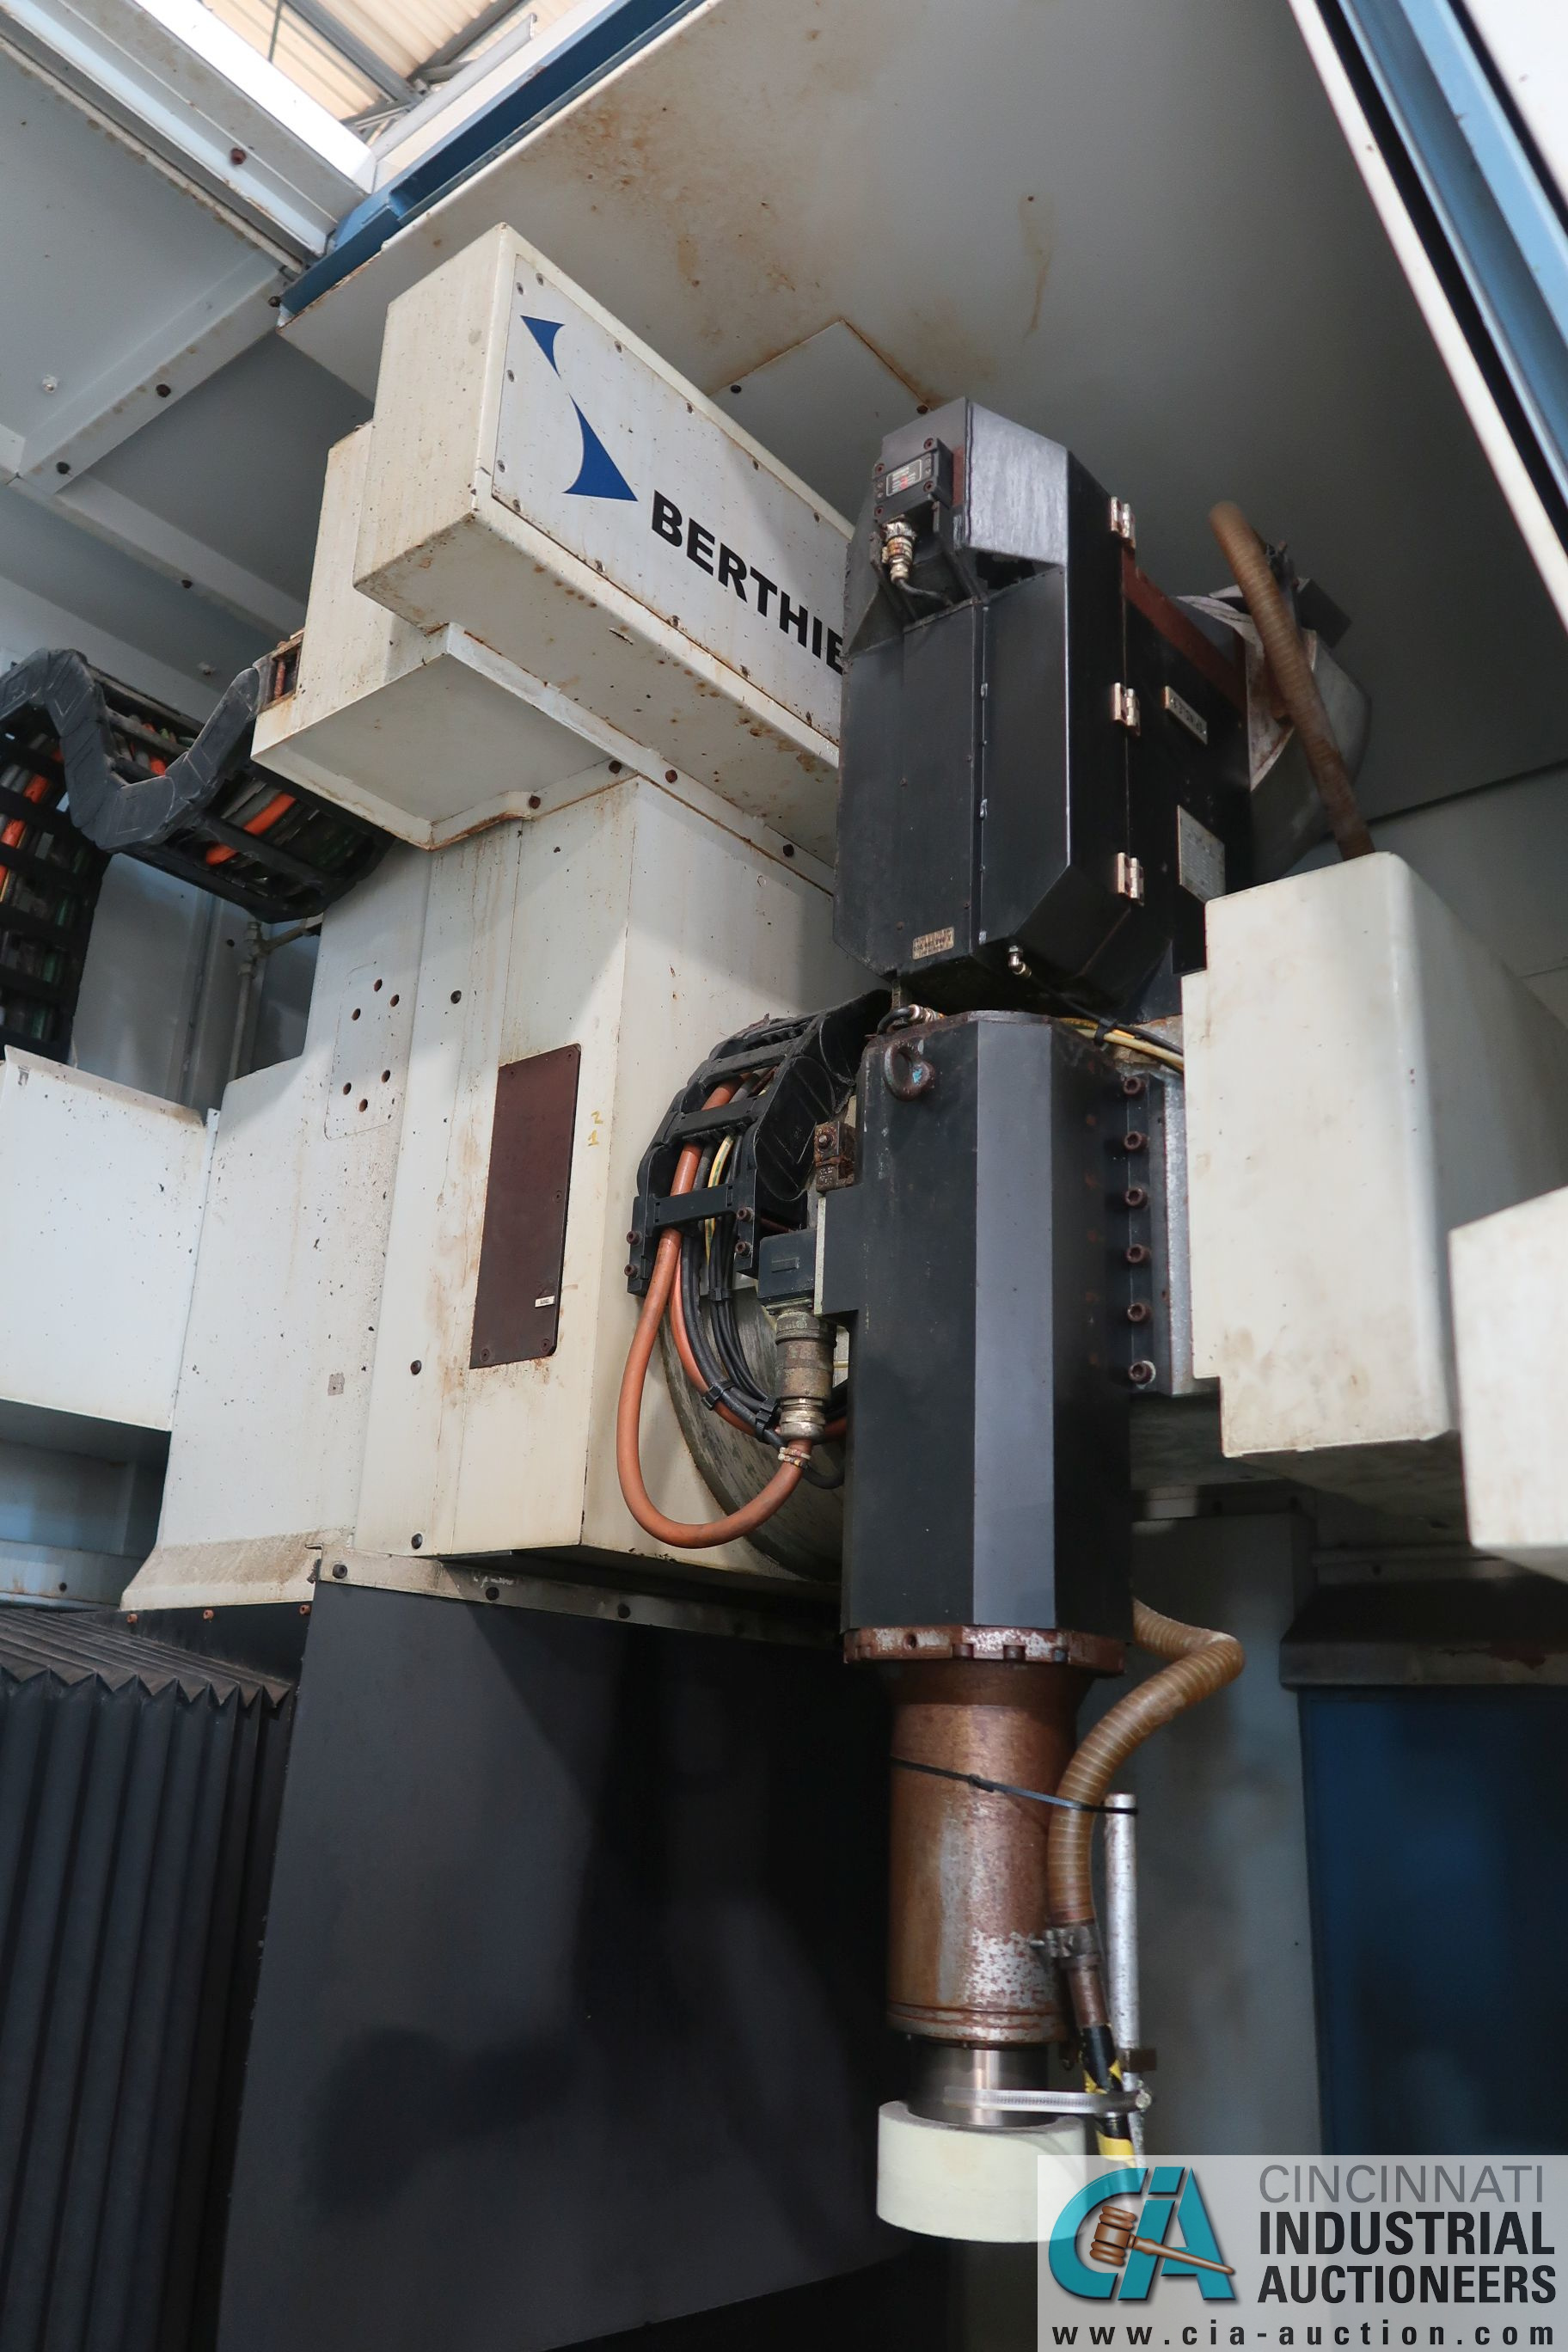 BERTHIEZ MODEL RVU 900/80 ID/OD, WITH TURNING, VERTICAL CNC GRINDER; S/N 4219, 84OD SIEMENS CONTROL - Image 8 of 33